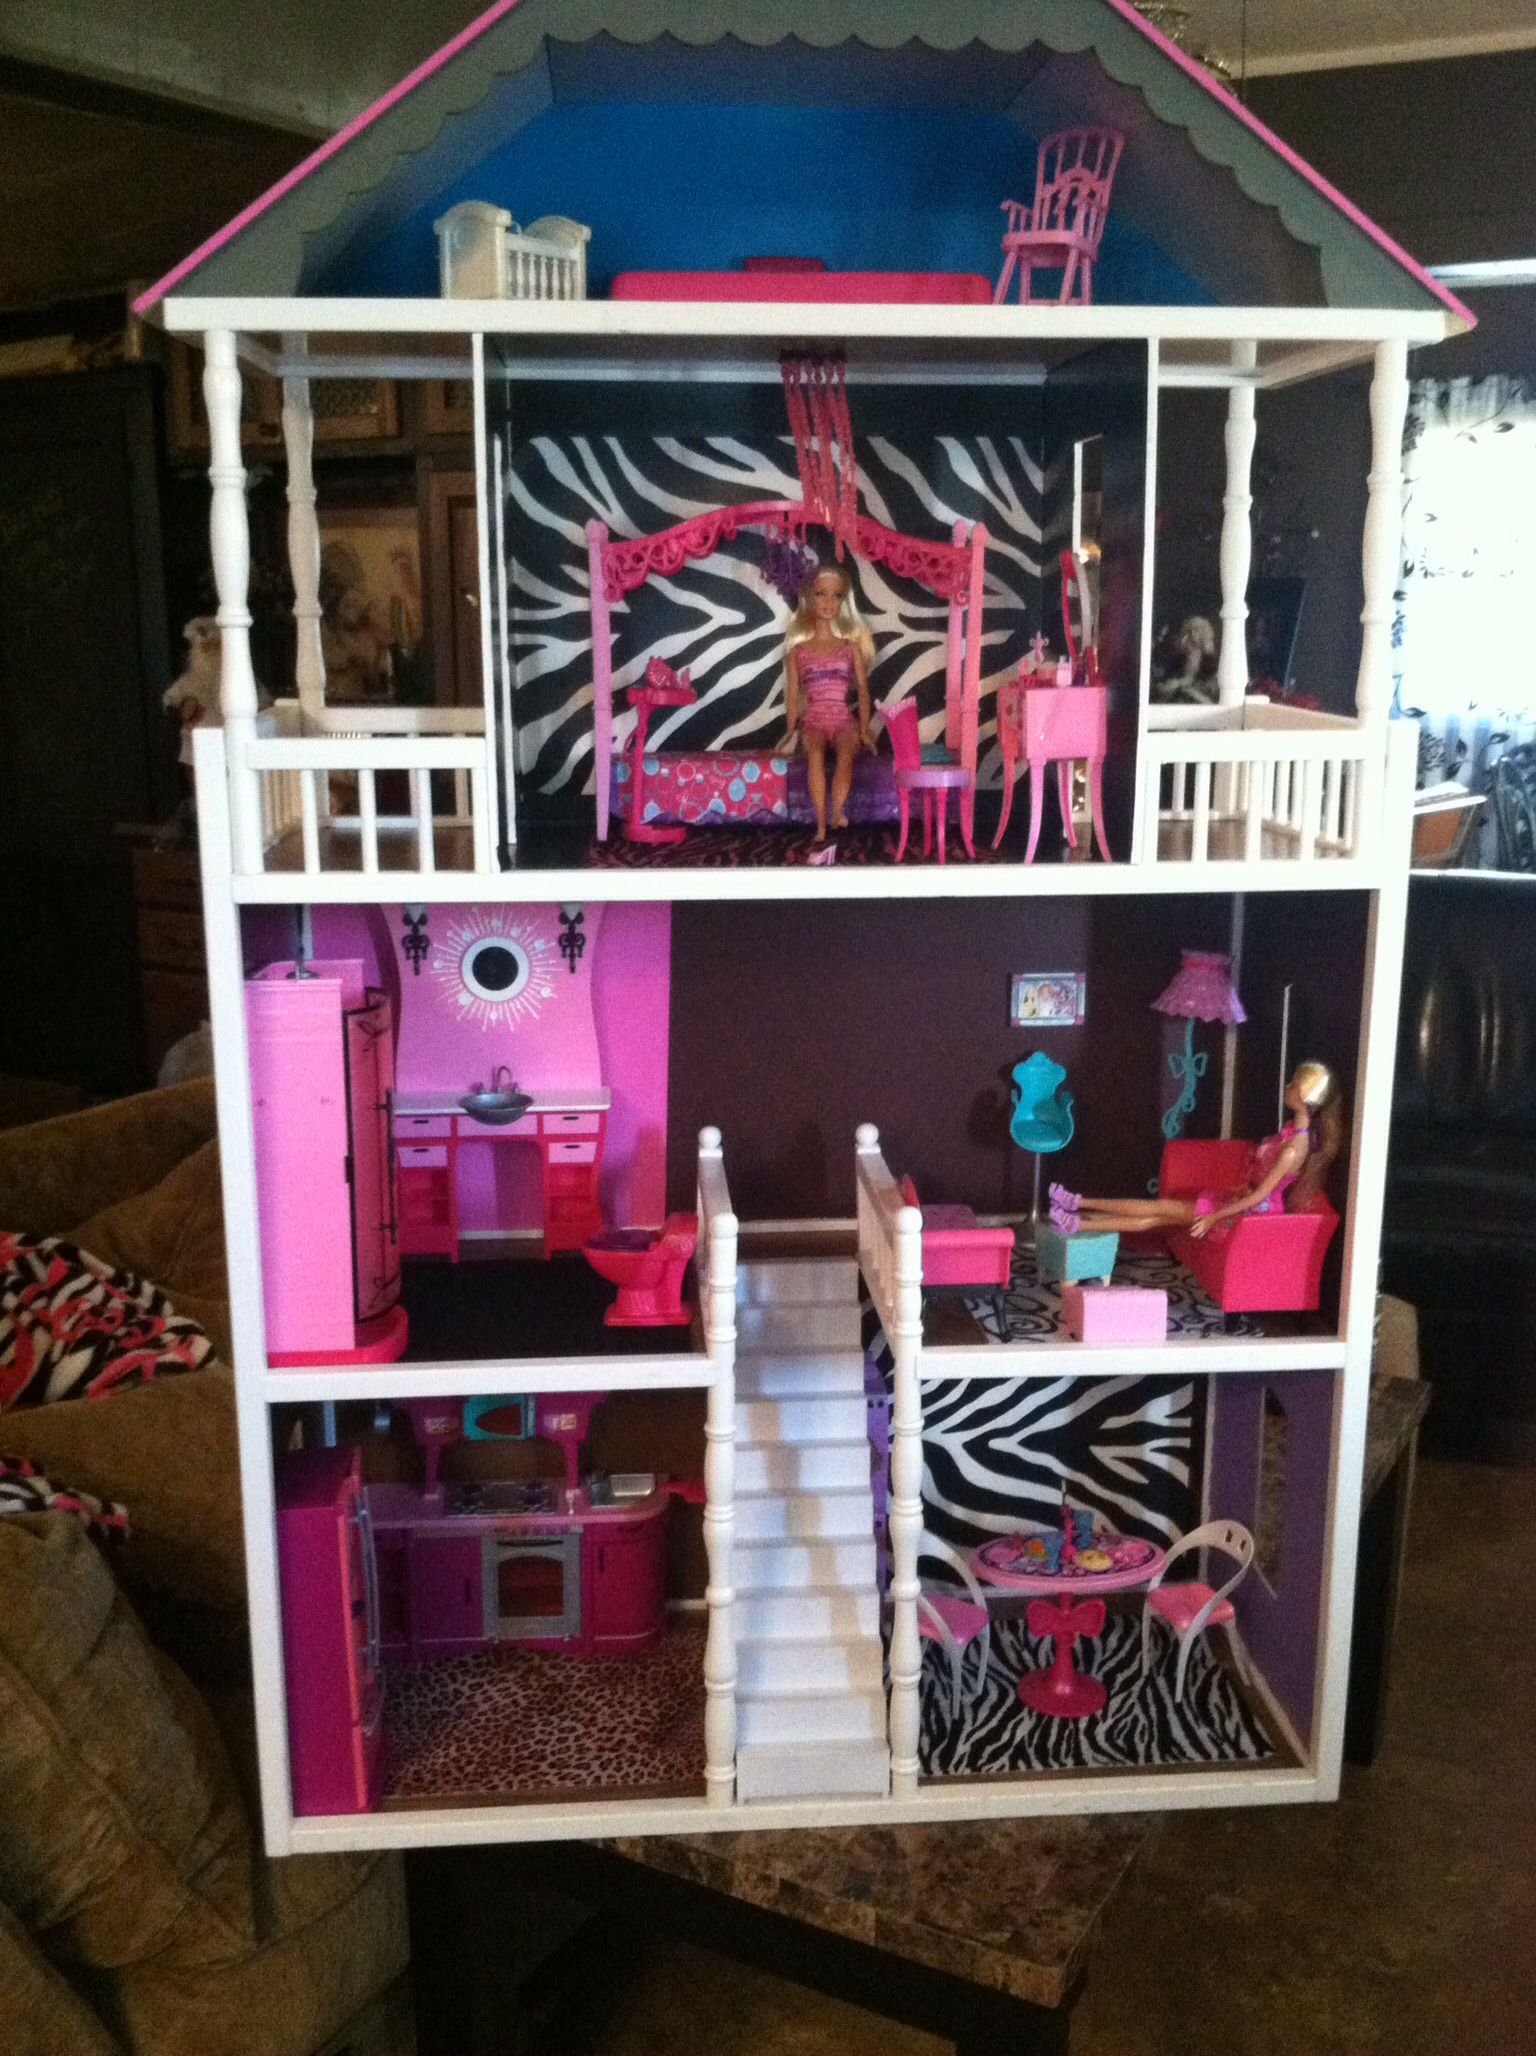 10 awesome barbie doll house models - Barbie Doll House Redone